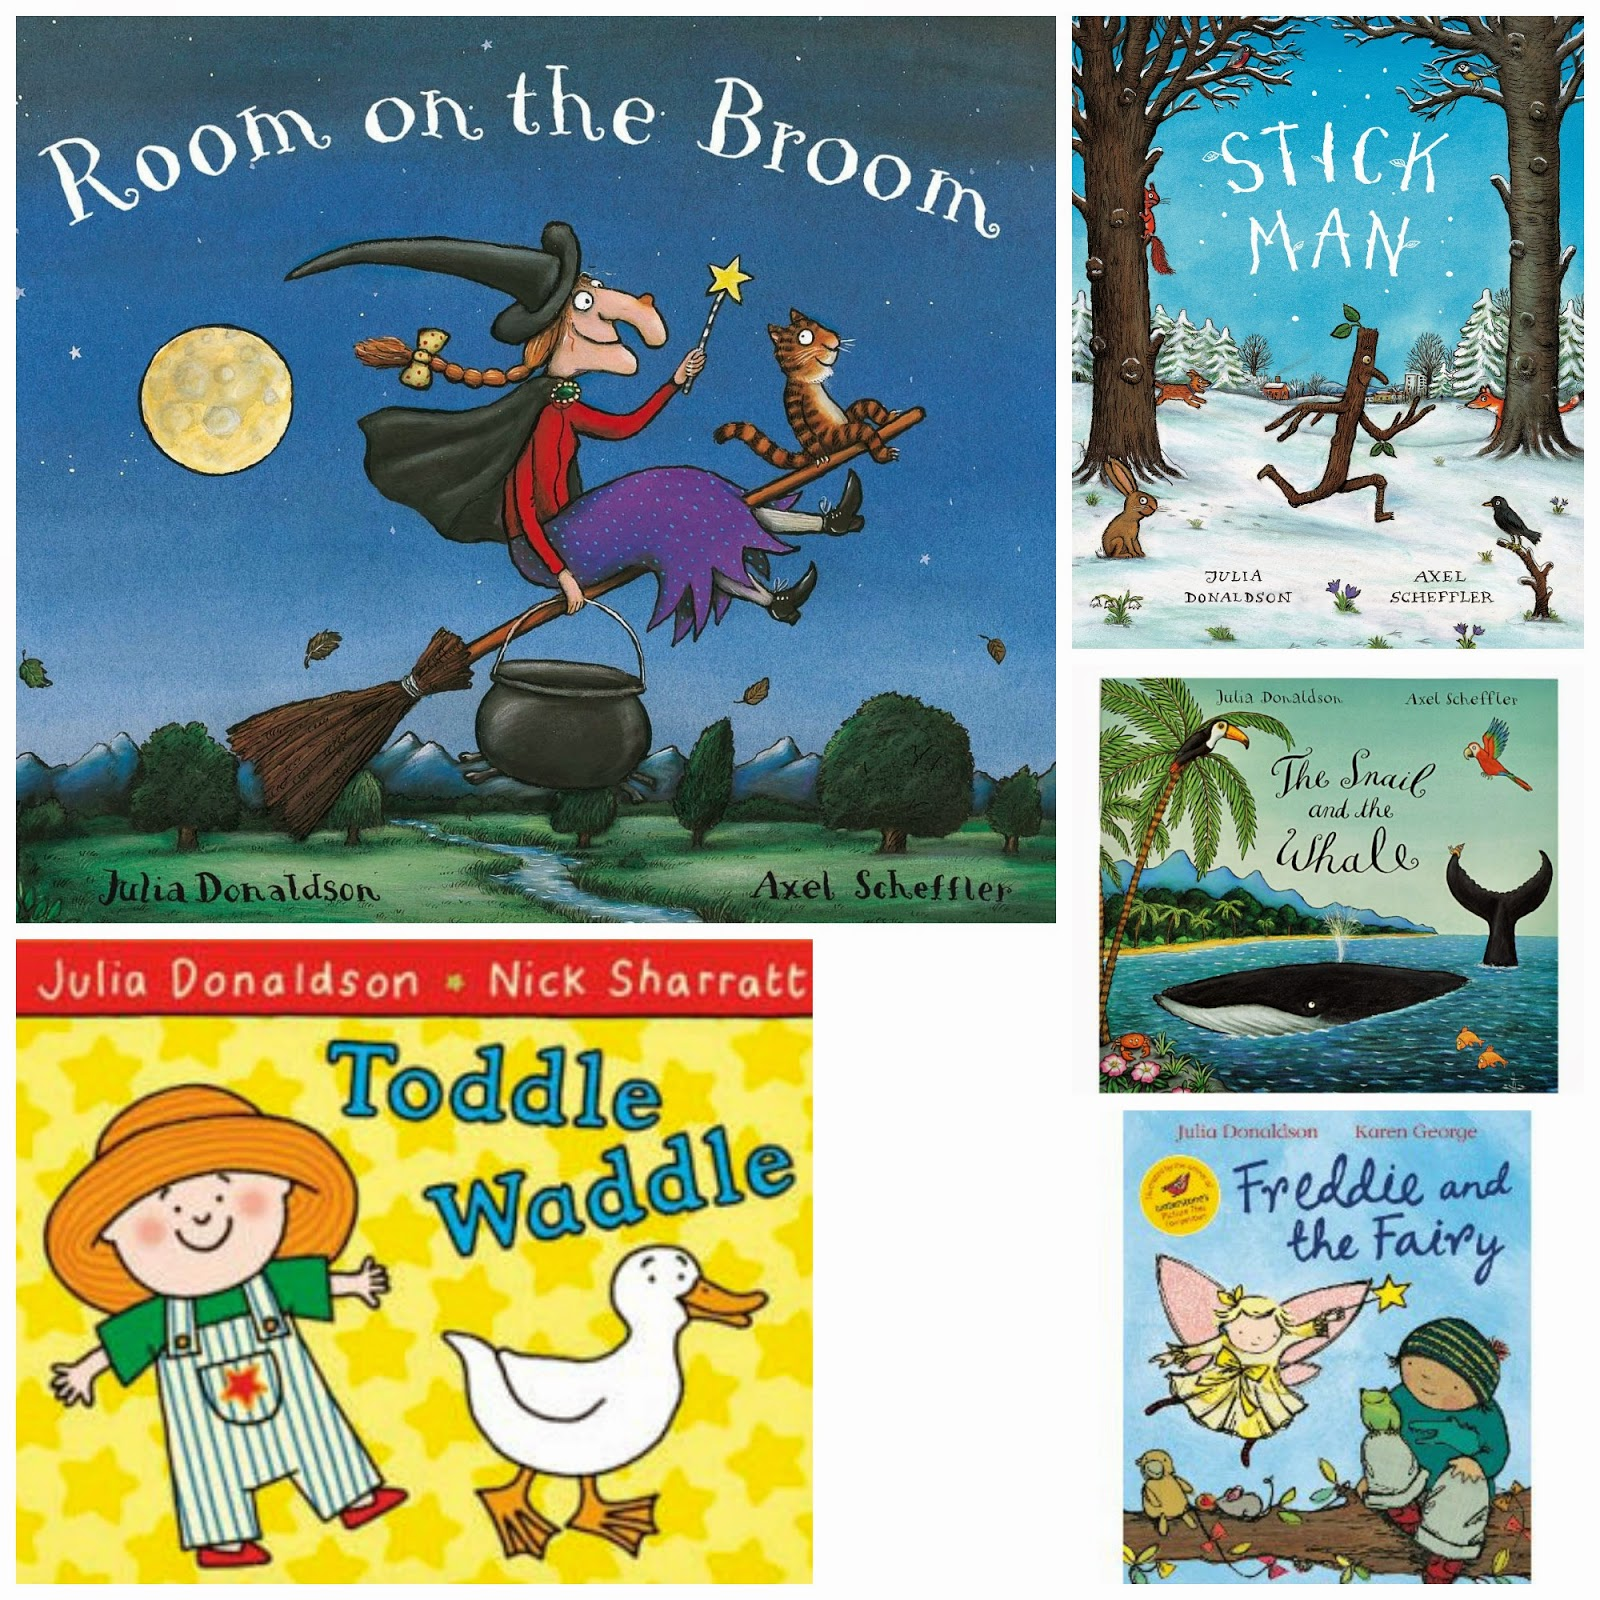 Our 10 favourite Julia Donaldson books for toddlers | Room on the broom | Tabby Mctat | axel Scheffler | children author | children books | what the ladybird heard | stick man | toddle waddle | books for toddlers | fave bedtime stories | fave bedtime books | best kids books | julia donaldon | nigth monkey | day monkey | monkey puzzle | the snail and the whale | amazon books for children | classic reads for kids | Julia donaldson | author | books for kids